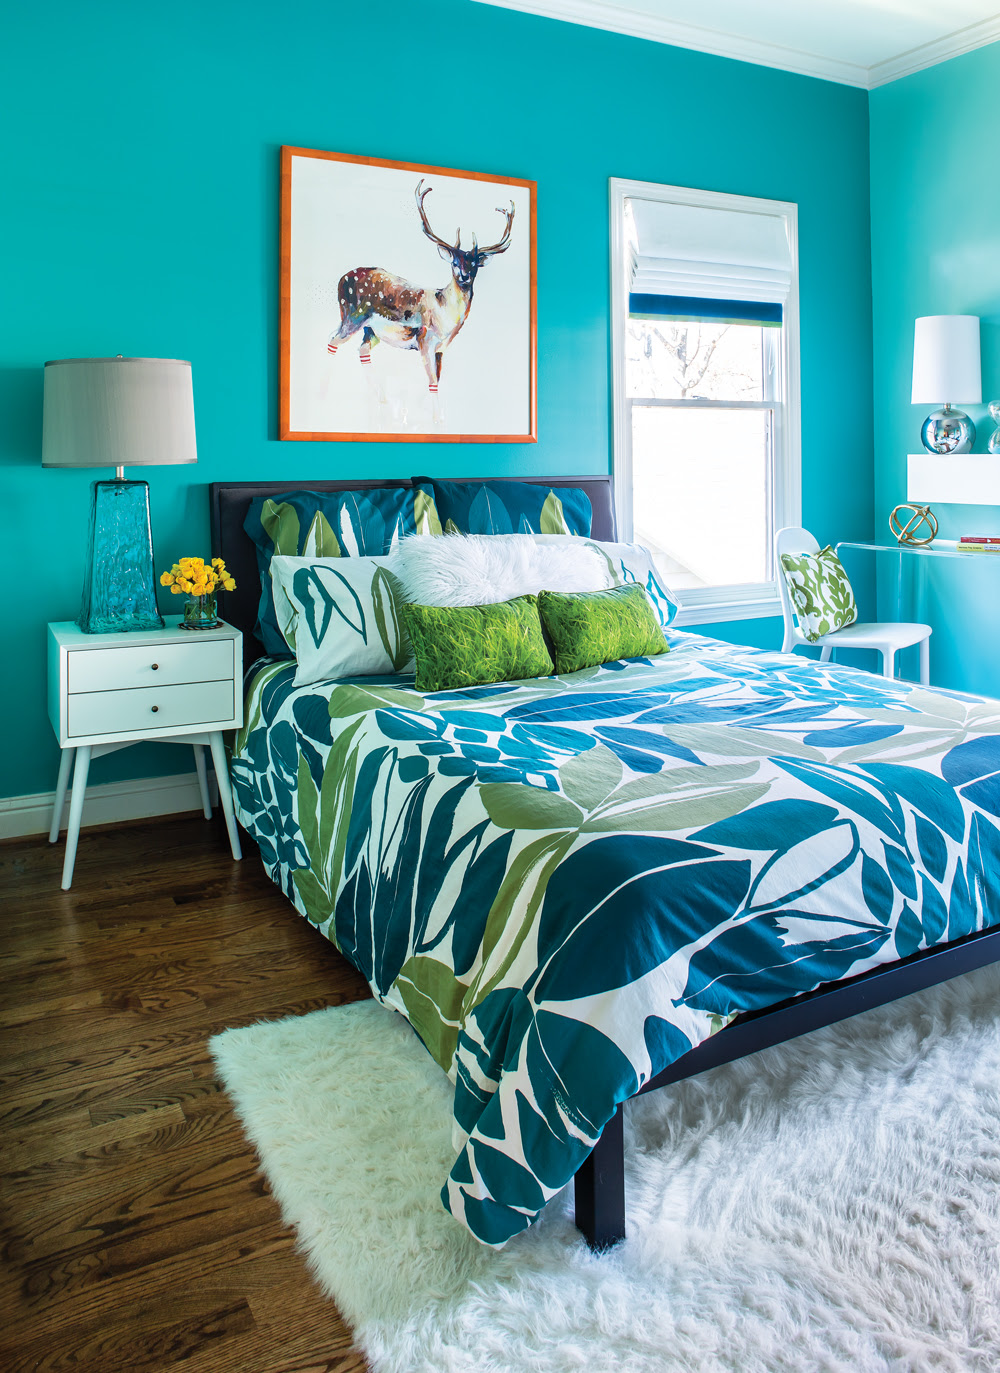 Room Envy: This bright turquoise bedroom is a teen dream ...